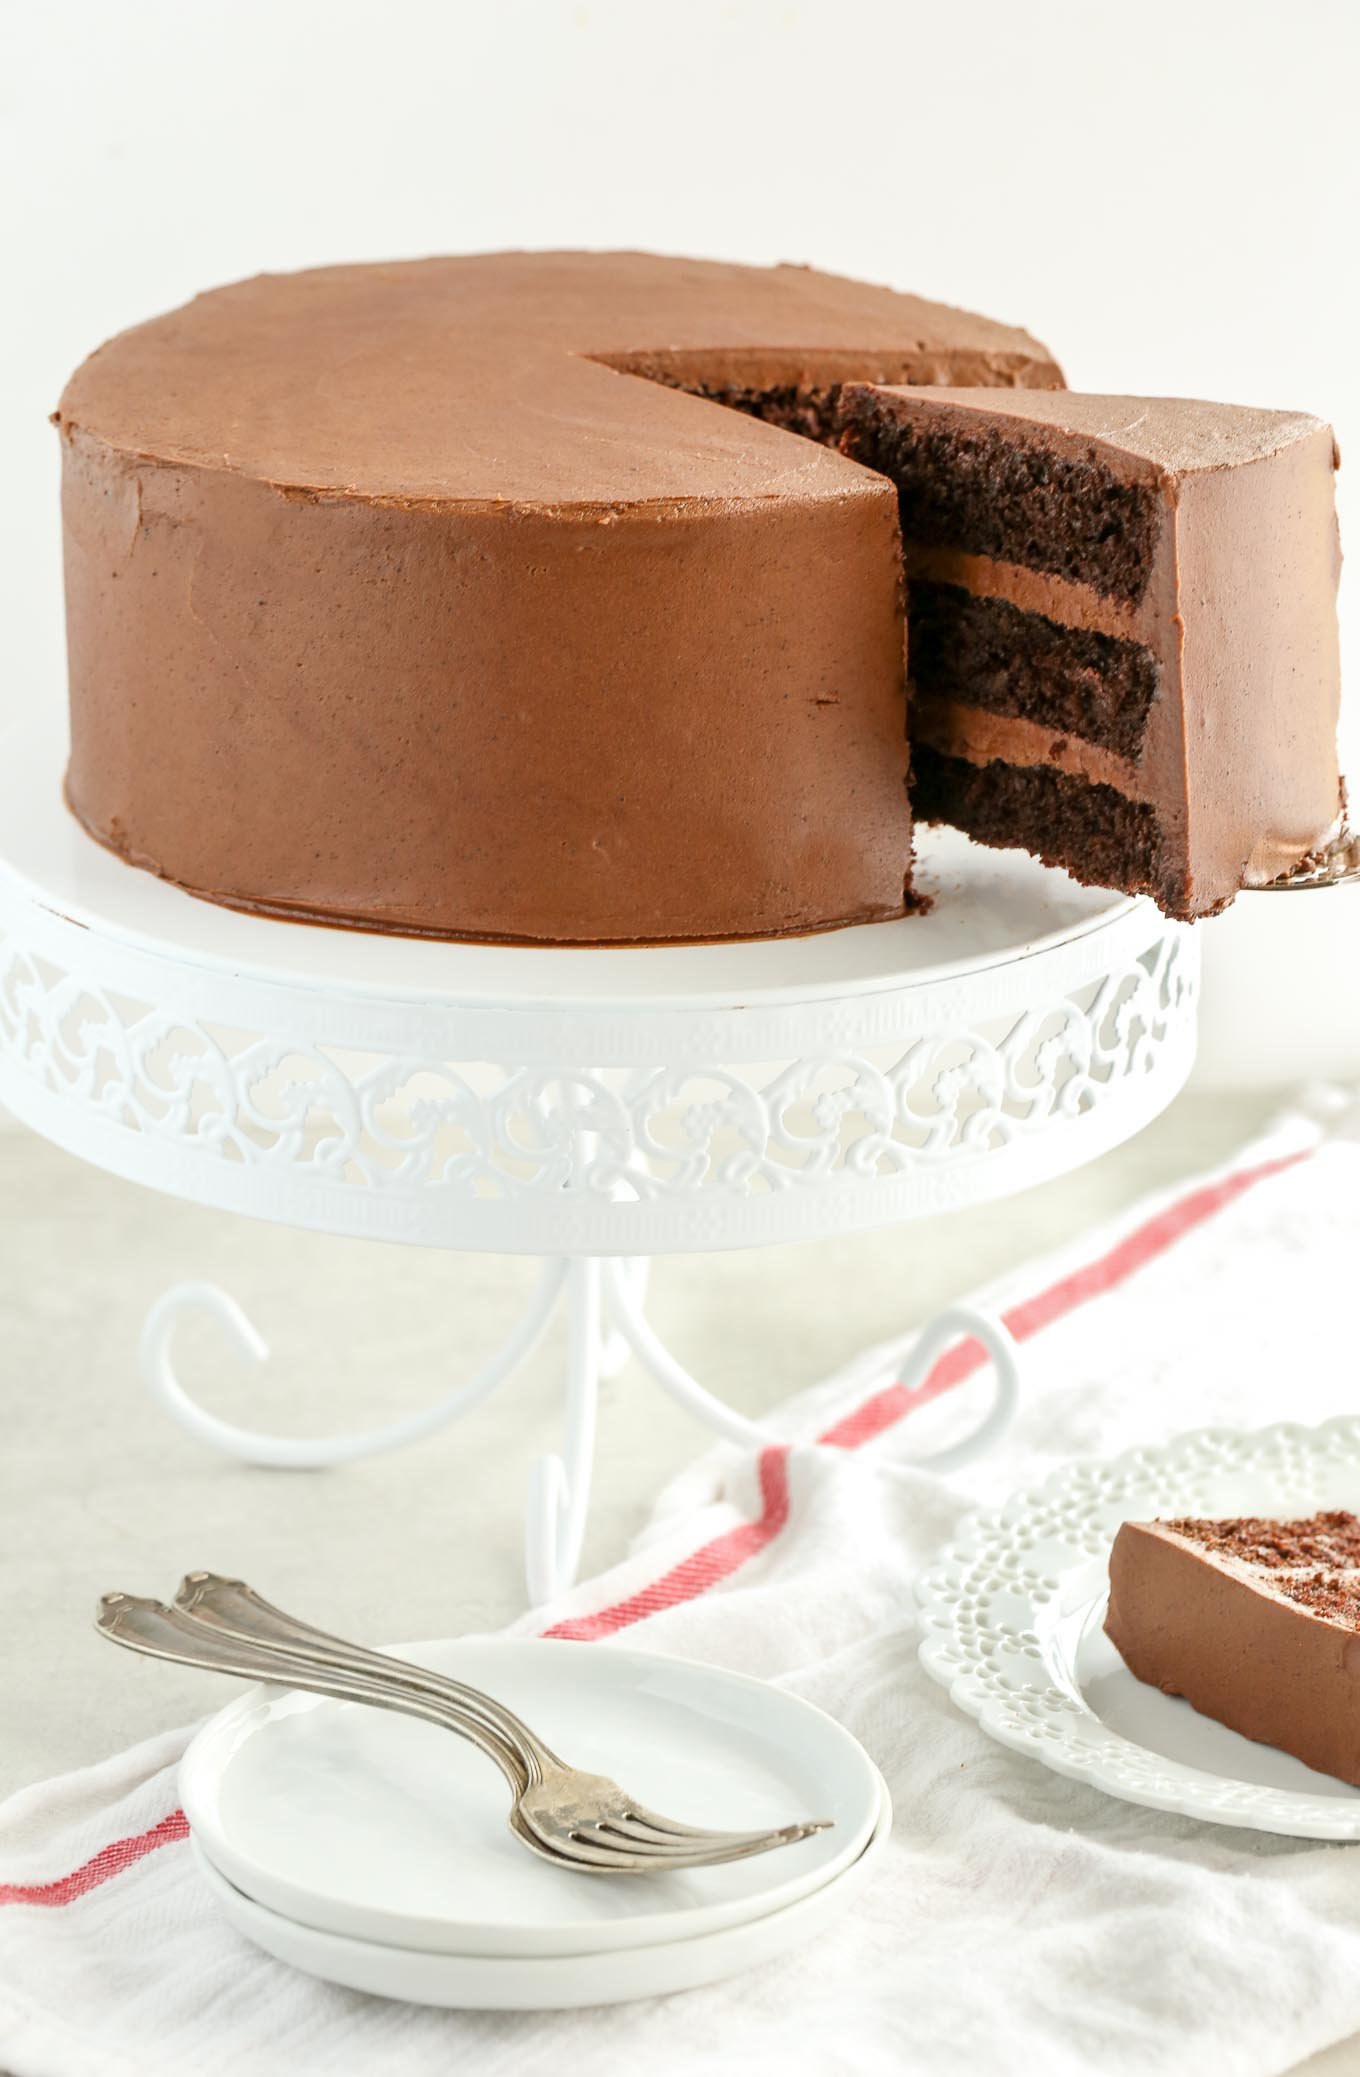 A recipe and tutorial on how to make my favorite chocolate layer cake with a simple homemade chocolate buttercream frosting. This recipe is easy to make and turns out perfect every single time!